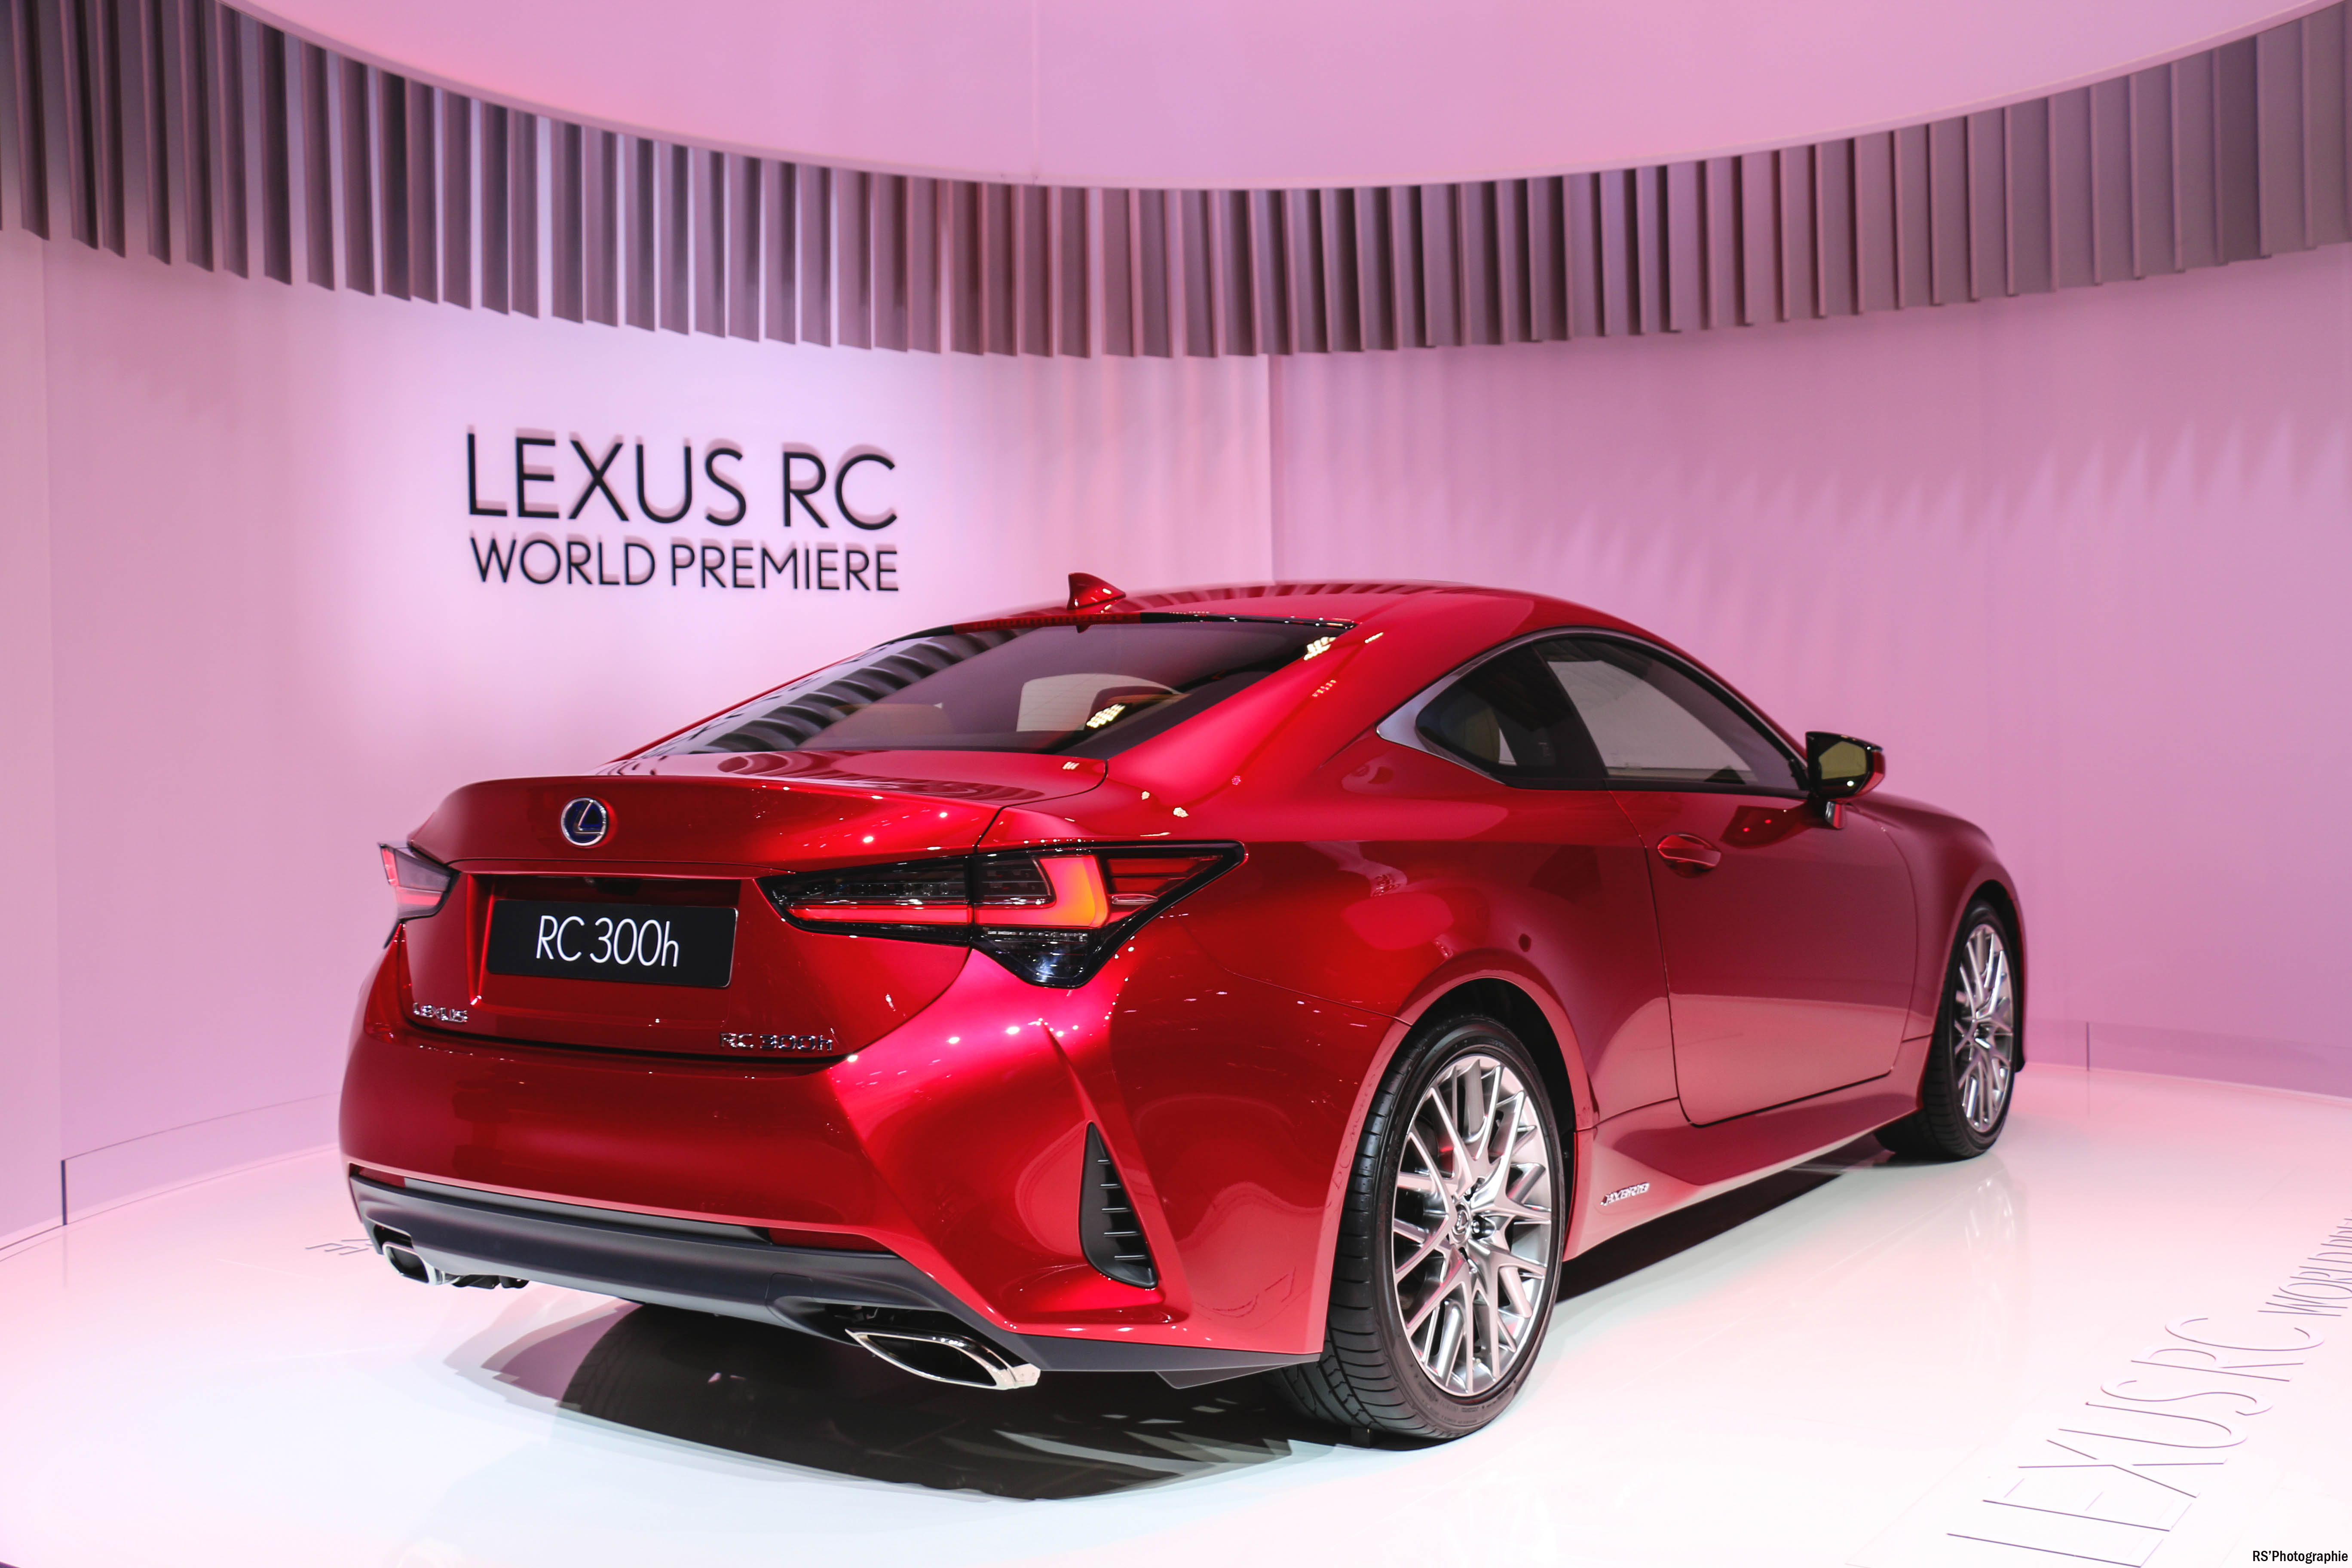 Lexus RC 300h - rear - Paris Motor Show - 2018 - Mondial Auto - photo by Arnaud Demasier RS Photographie